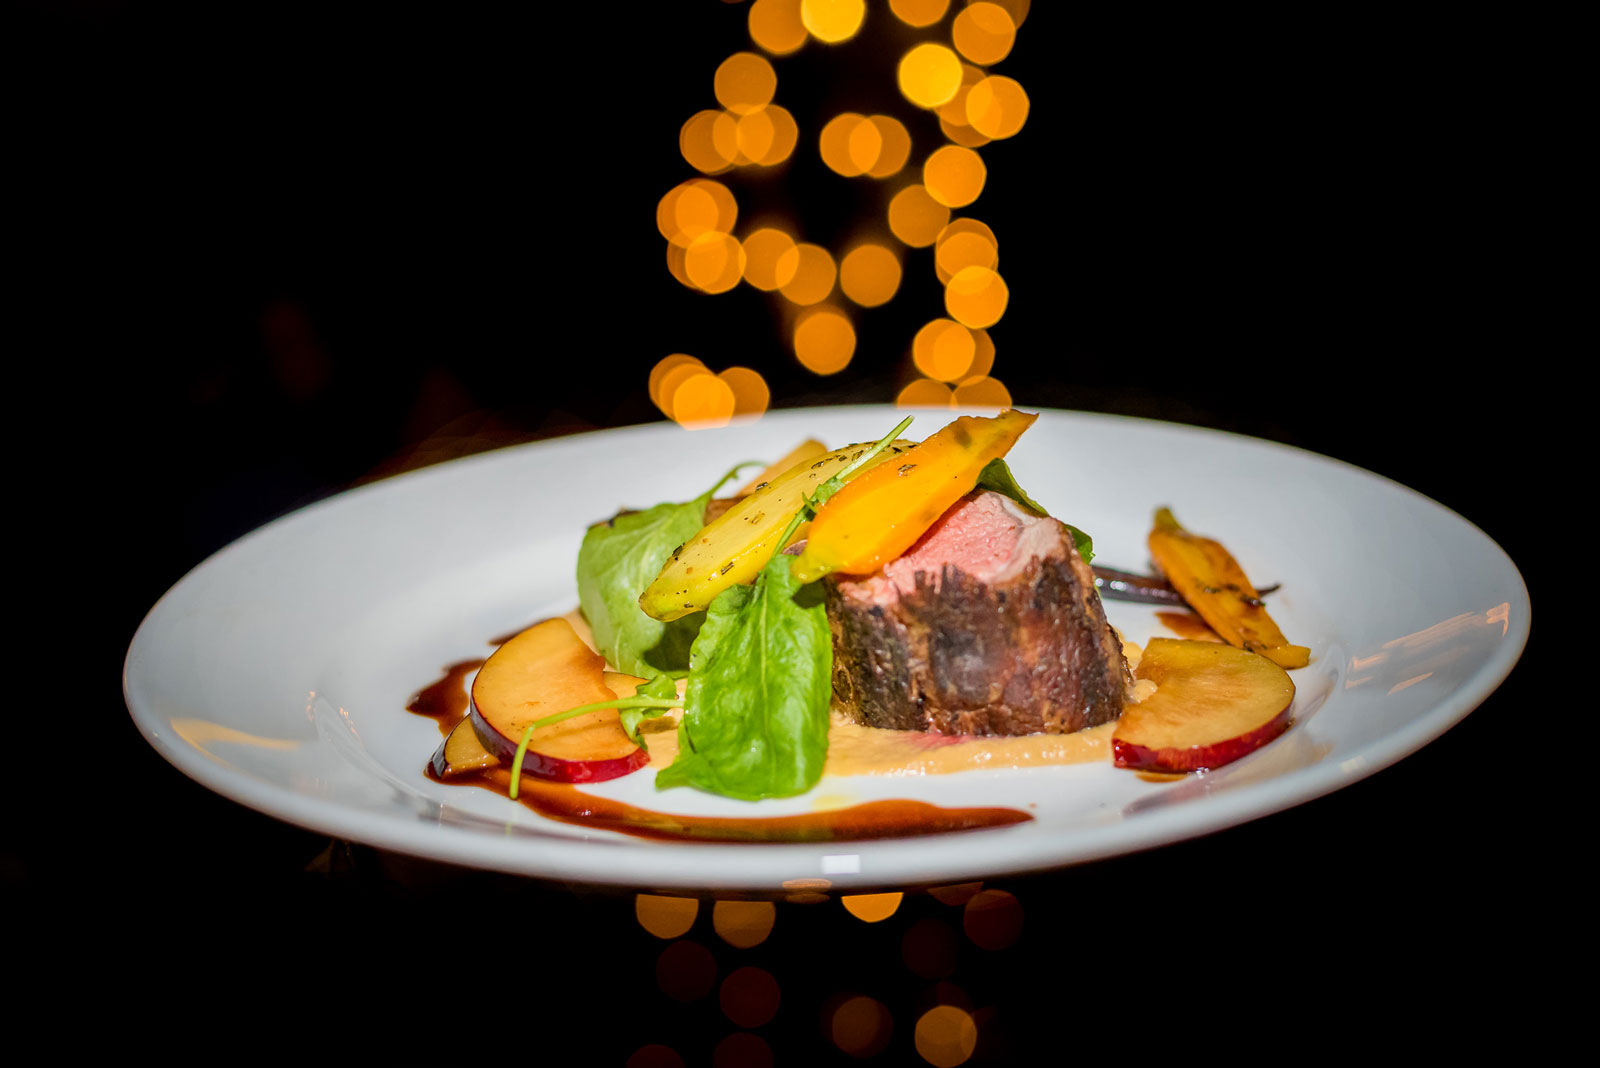 Bison dish from 32 East. Photos by Carl Dawson.